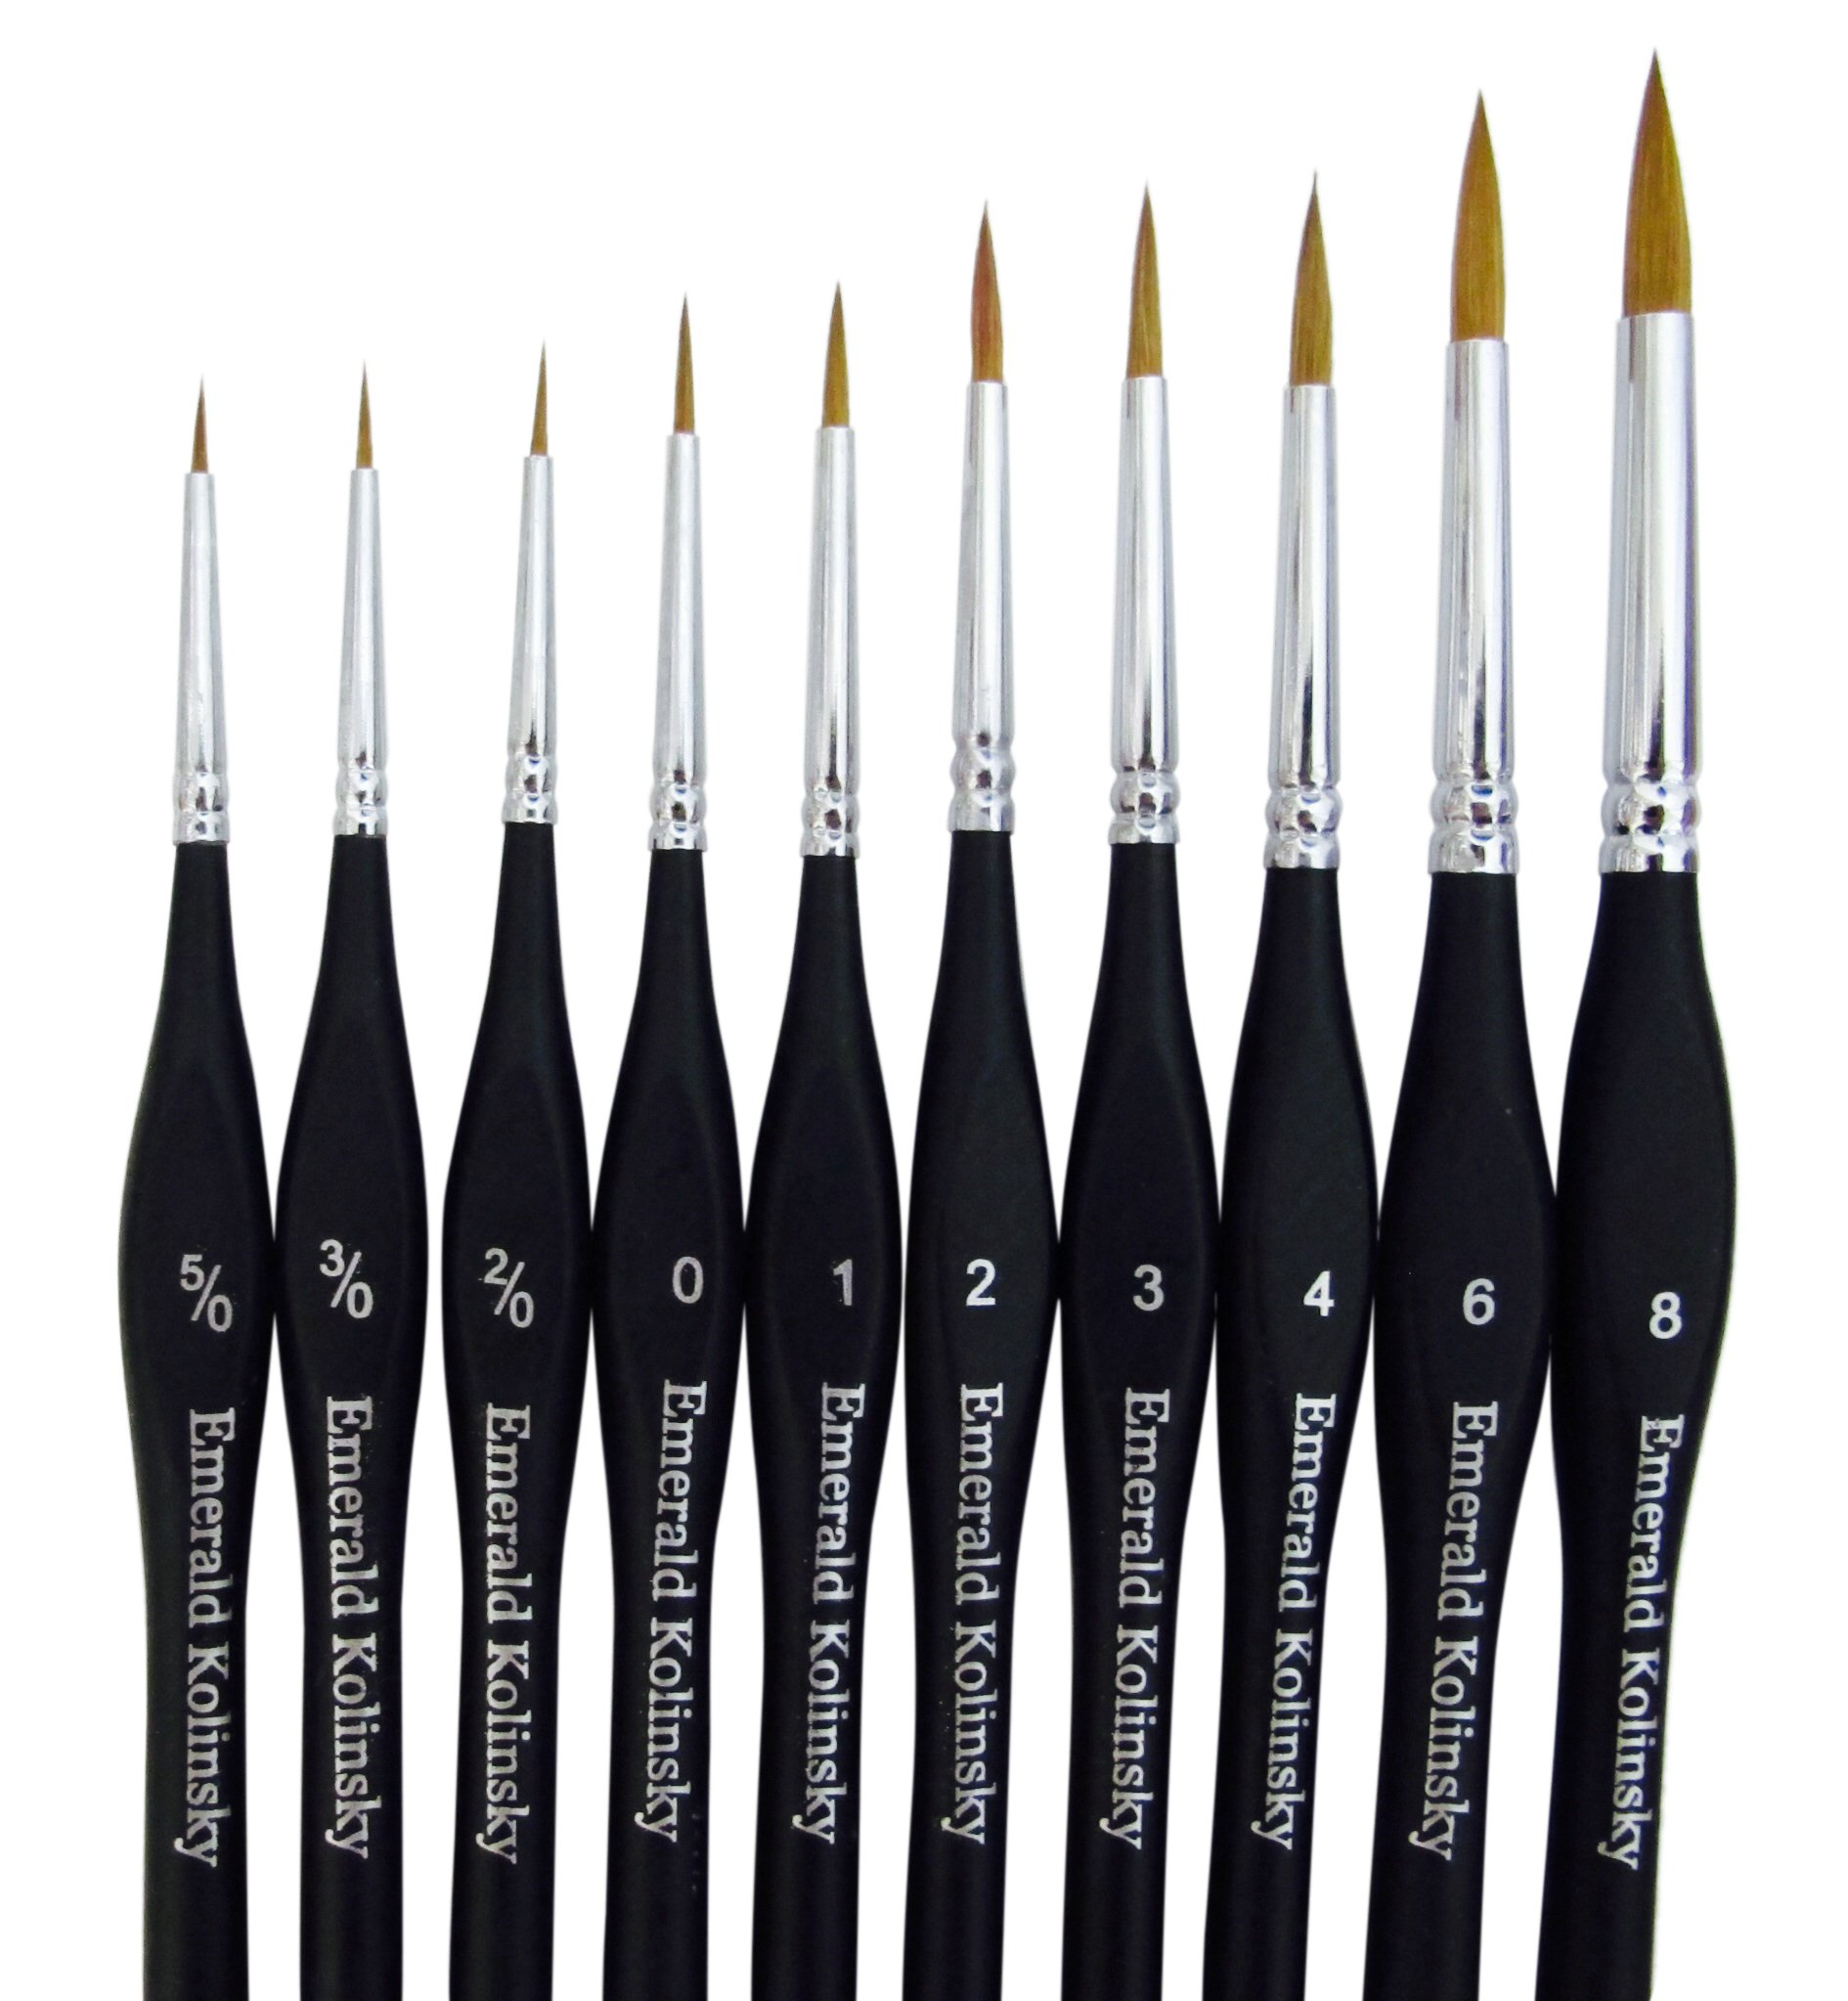 Best Professional Siberian Kolinsky Sable Detail Paint Brush, Value Set of 10, High Quality Miniature Brushes Will Keep a Fine Point and Spring, For Watercolor, Oil, Acrylic, Nail Art & Models by Emerald Art Supply